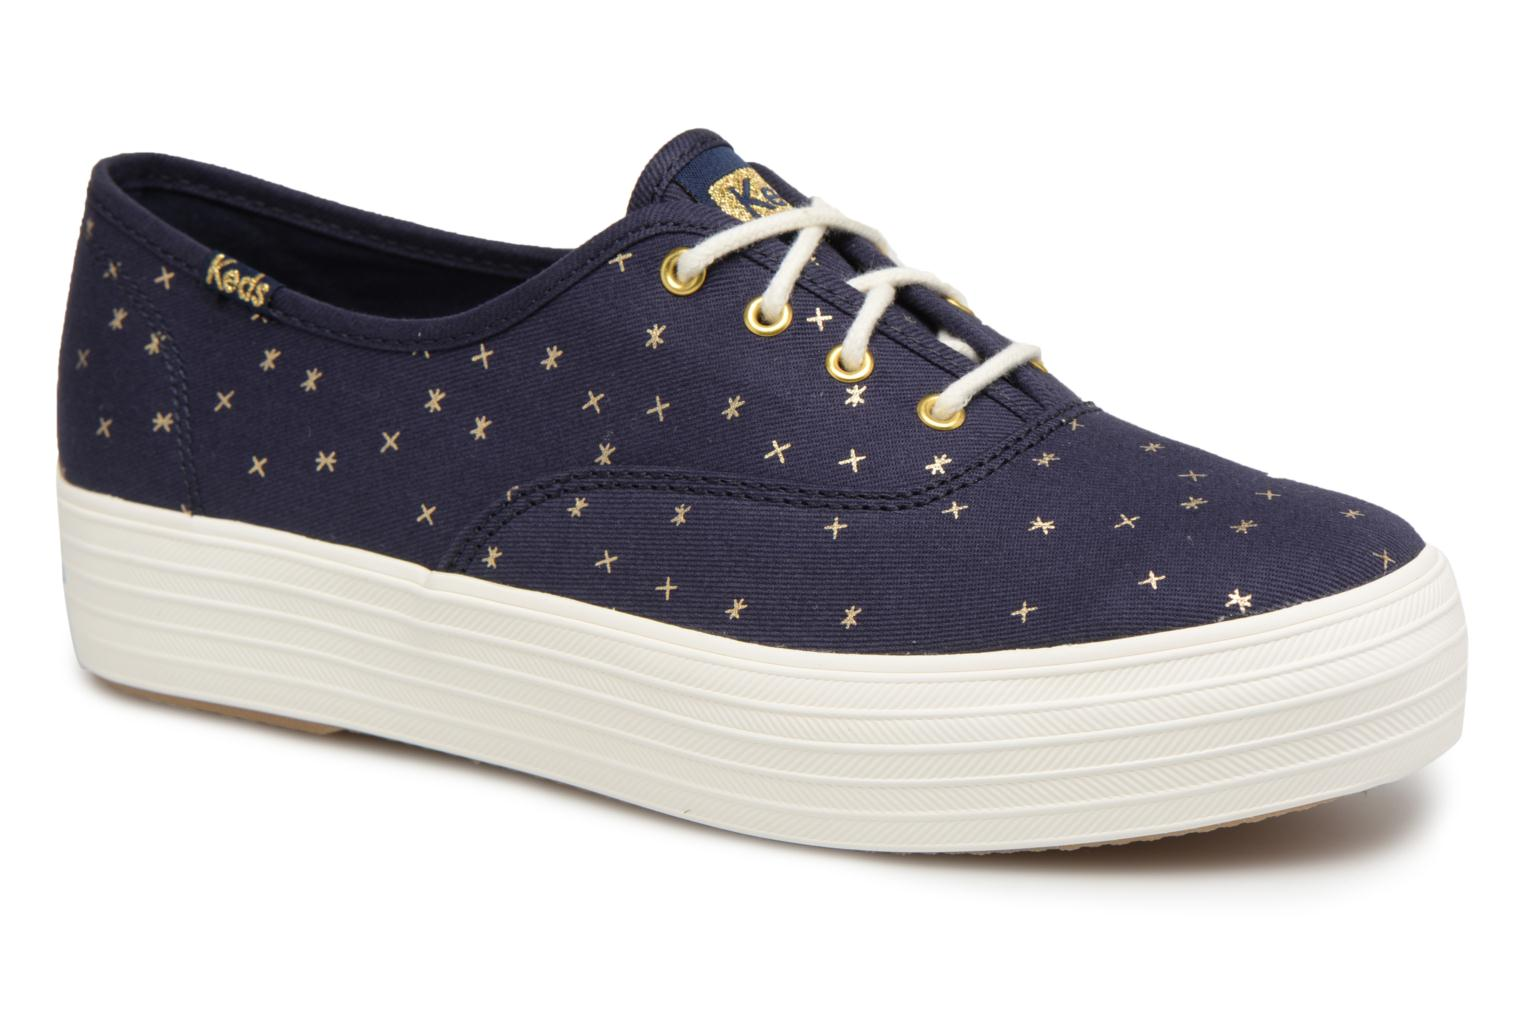 ZapatosKeds Triple Ethereal Zapatos (Azul) - Deportivas   Zapatos Ethereal casuales salvajes f95b78